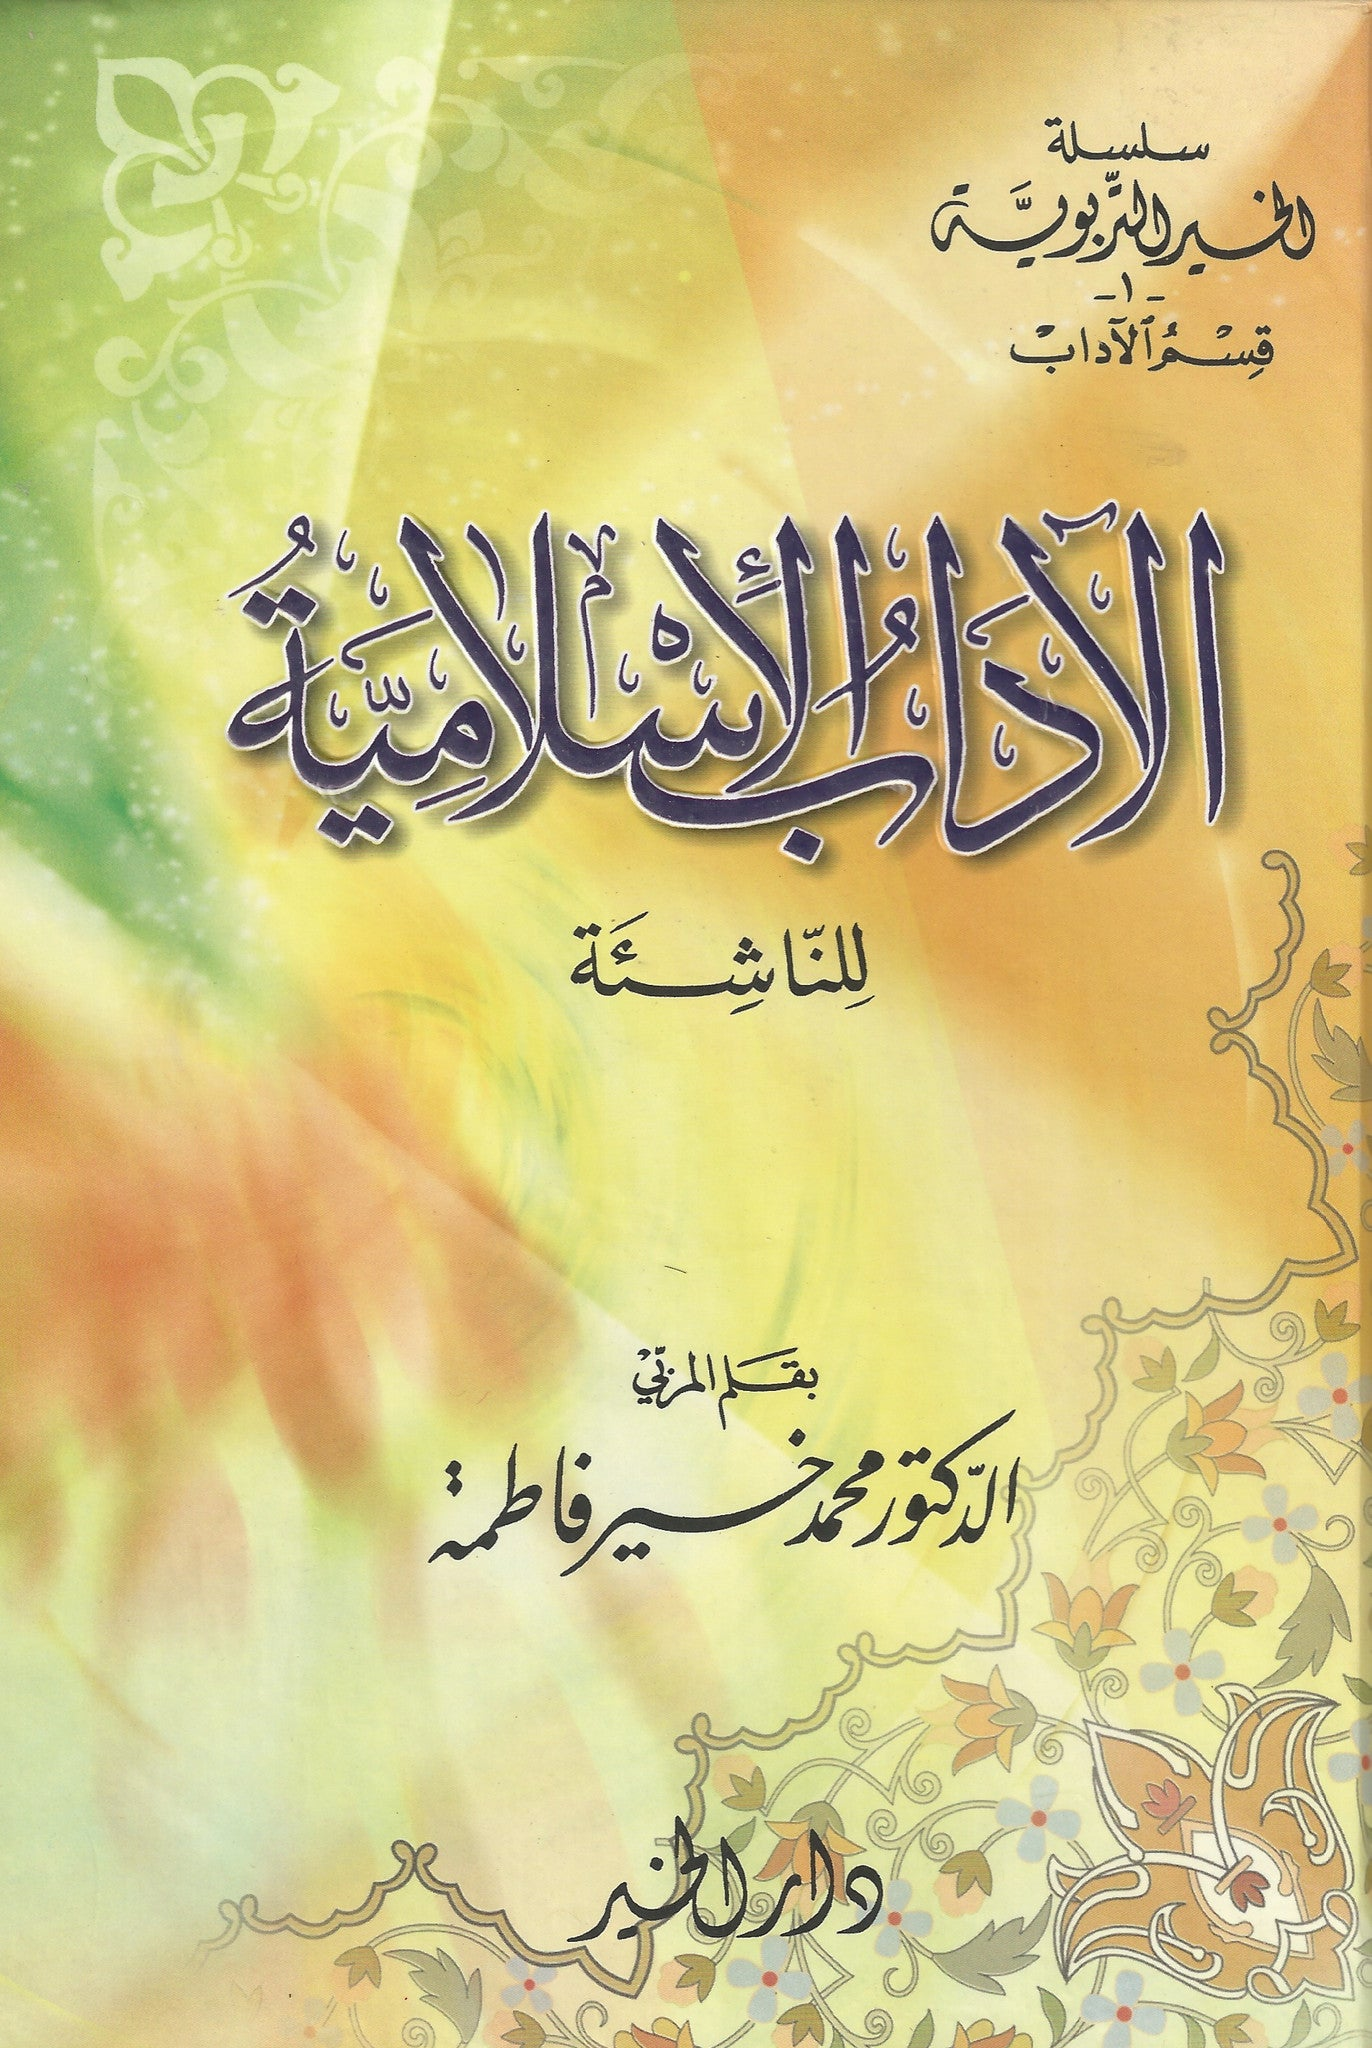 (Al-Ādāb al-Islāmiyya) الآداب الإسلامية للناشئة , Book - Daybreak International Bookstore, Daybreak Press Global Bookshop